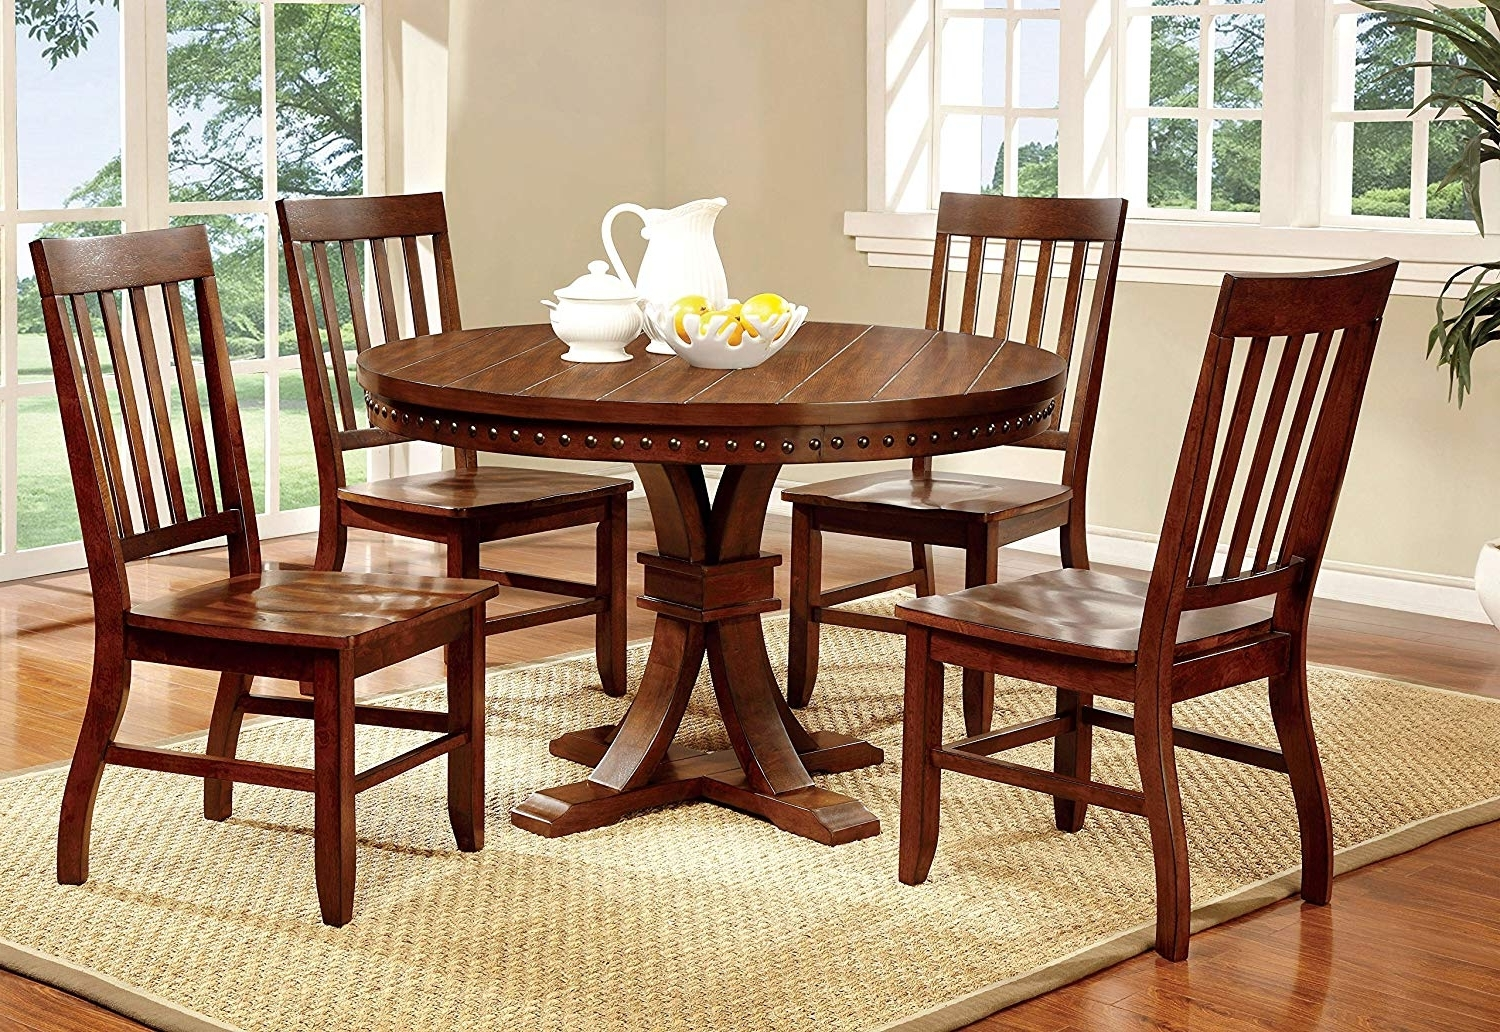 Most Recent Amazon – Furniture Of America Castile 5 Piece Transitional Round Intended For Dark Wooden Dining Tables (View 10 of 25)